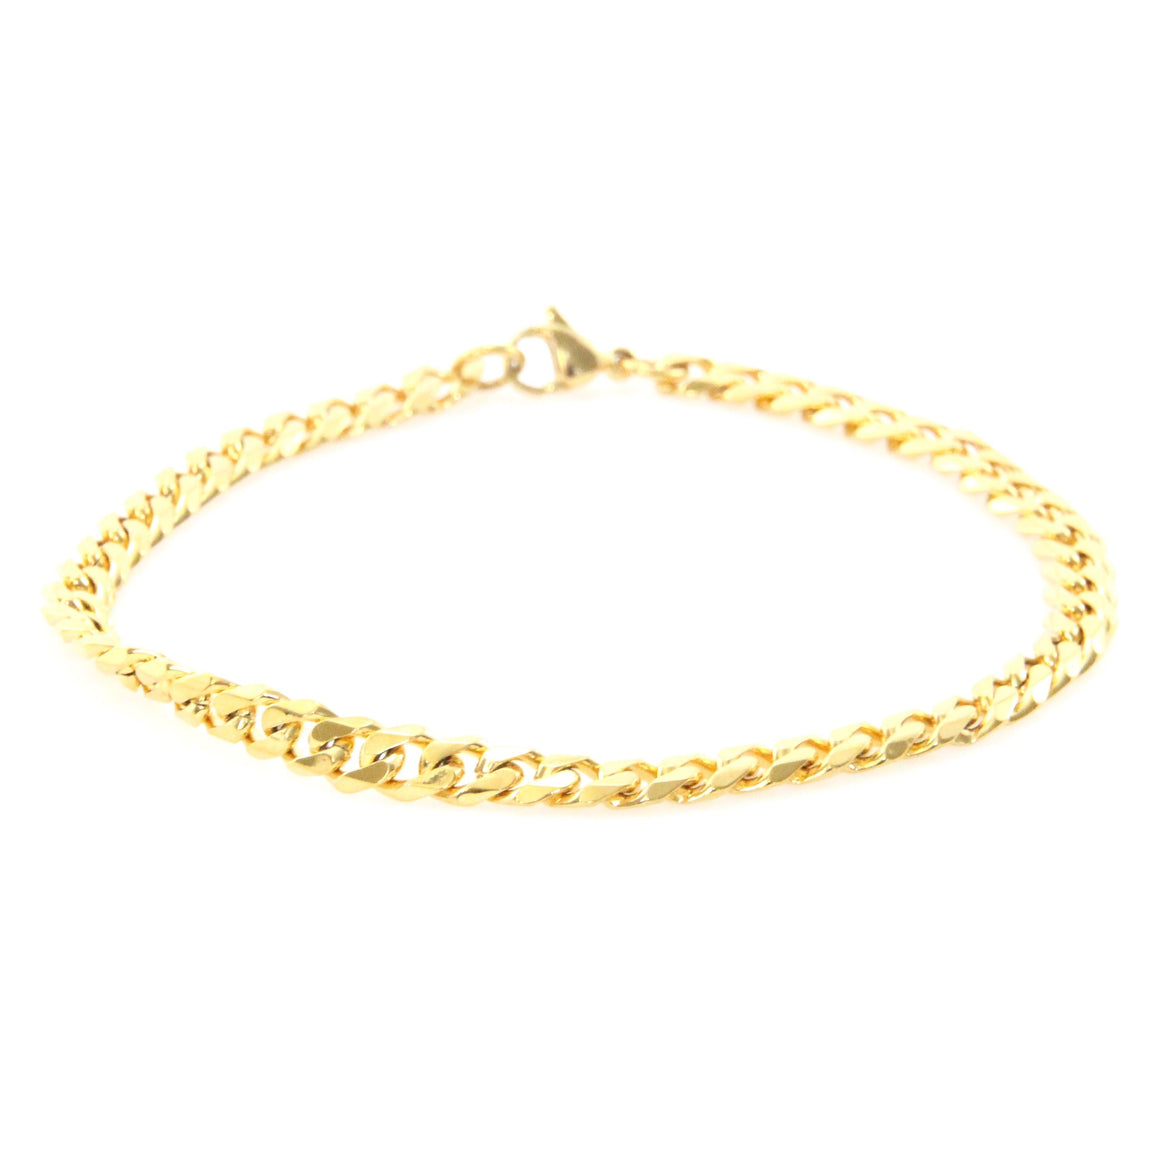 5mm Gold Stainless Steel Curb Chain